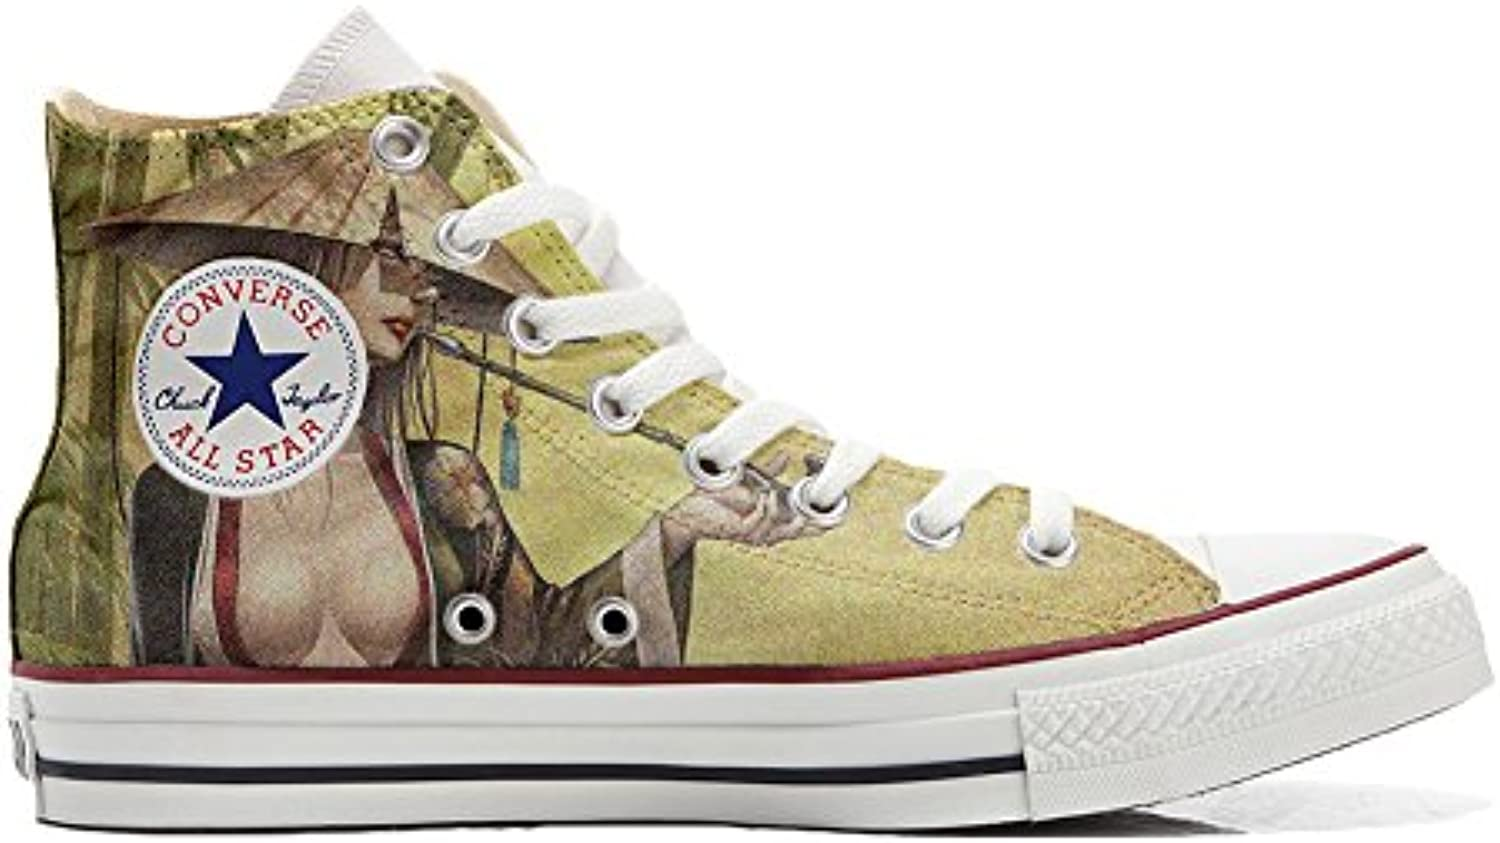 Converse All Star Customized - Zapatos Personalizados (Producto Artesano) Geisha Style  -